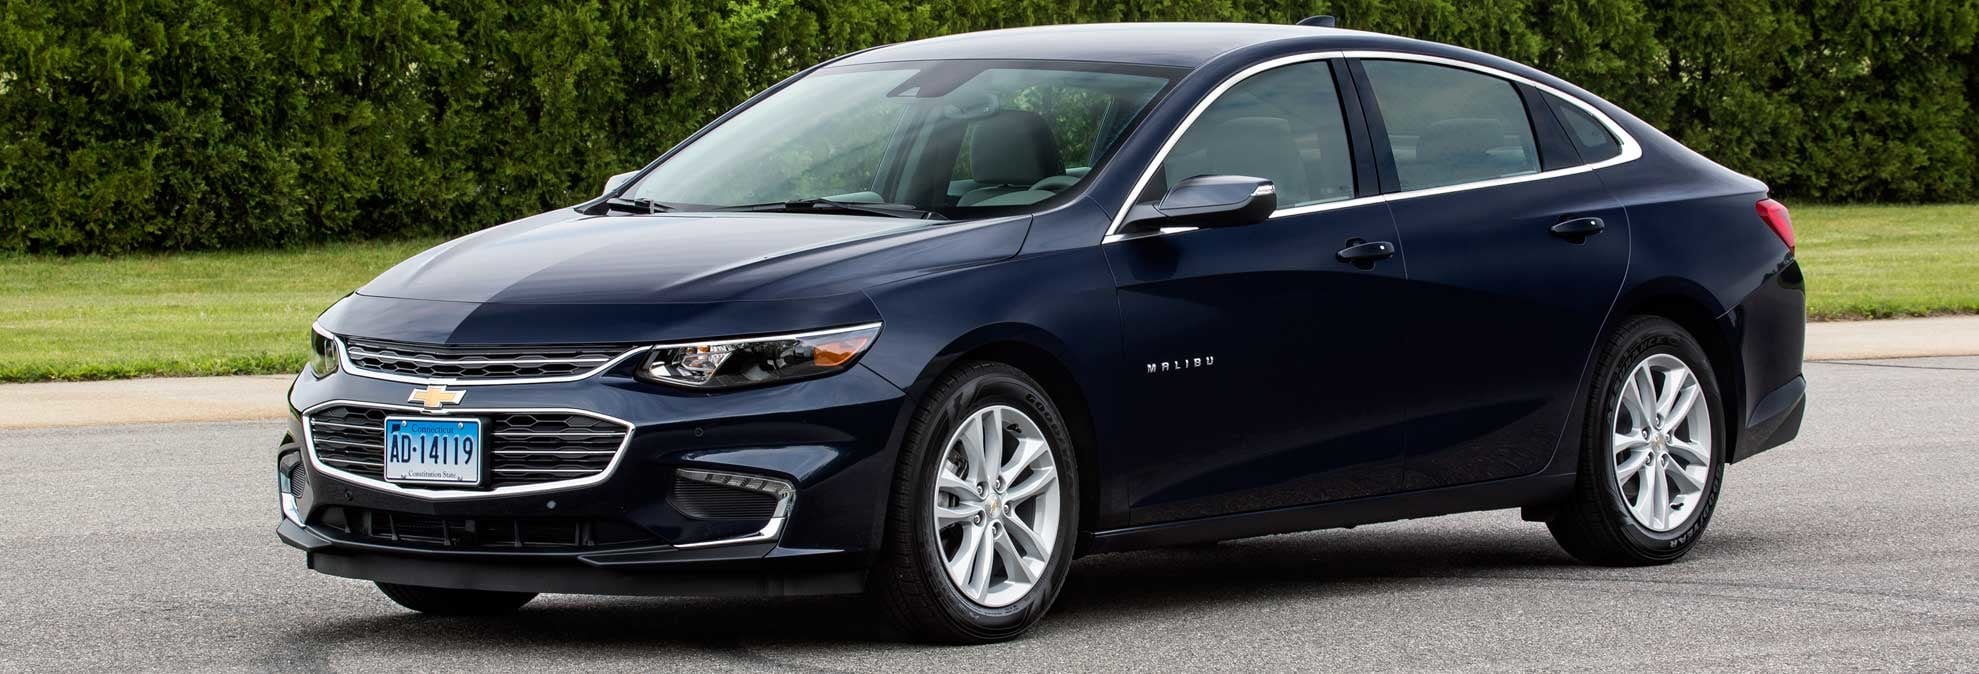 2017 chevrolet malibu hybrid review consumer reports. Black Bedroom Furniture Sets. Home Design Ideas